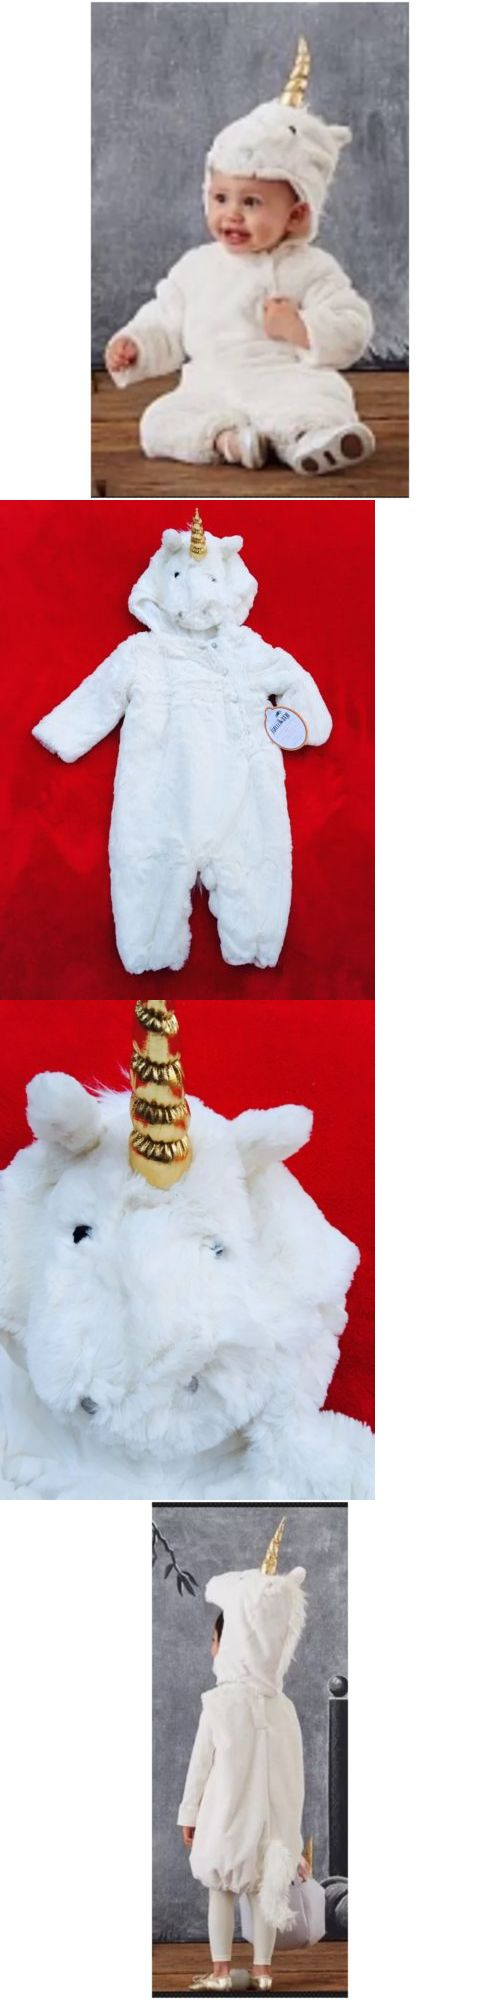 Halloween Costumes Kids: Pottery Barn Kids Plush Baby Unicorn Costume Dress Up One Piece 6-12 Months Nwt BUY IT NOW ONLY: $59.99